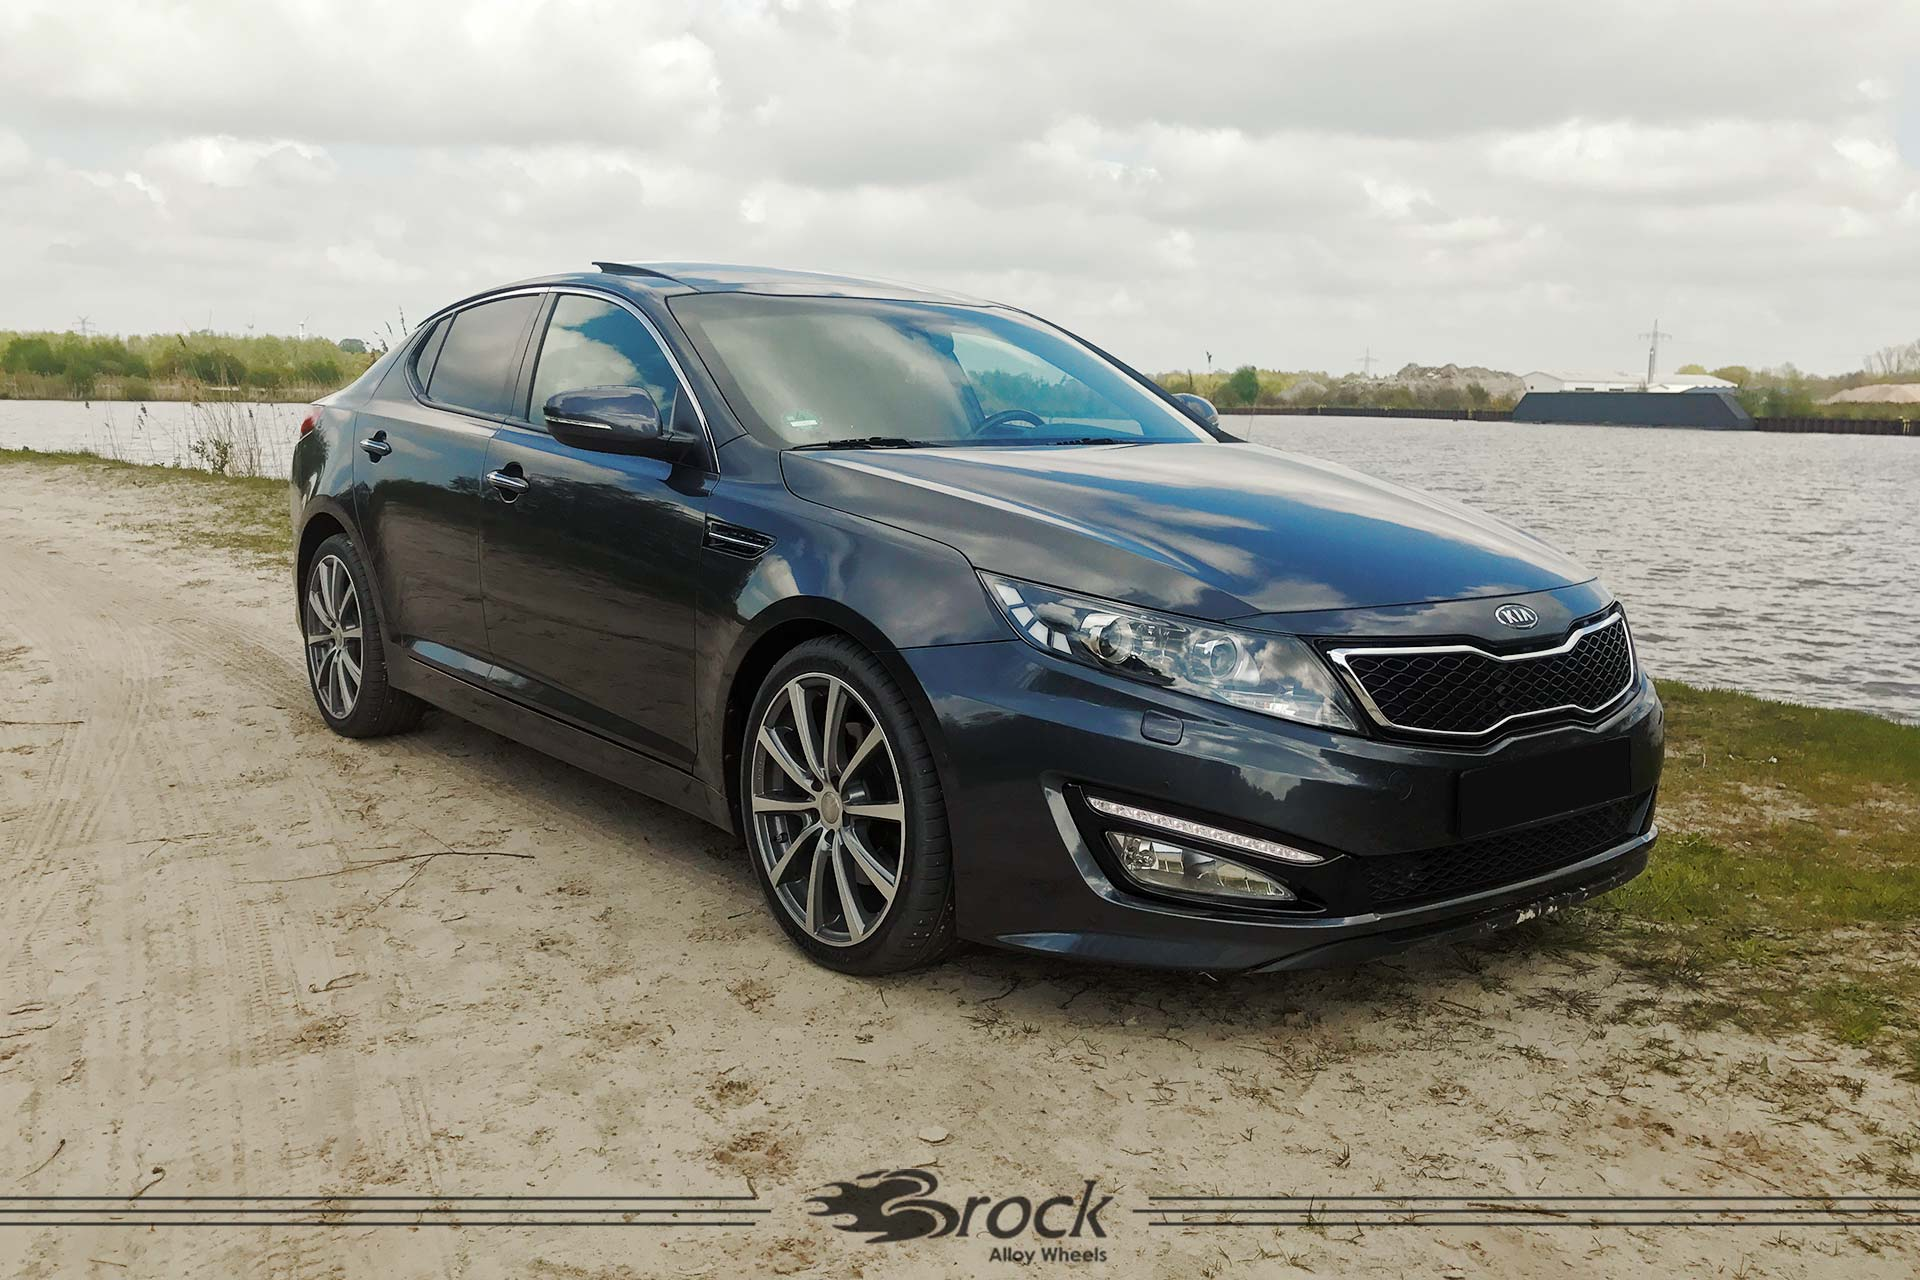 Kia-Optima-TF-Brock-B32-HGVP-7.jpg